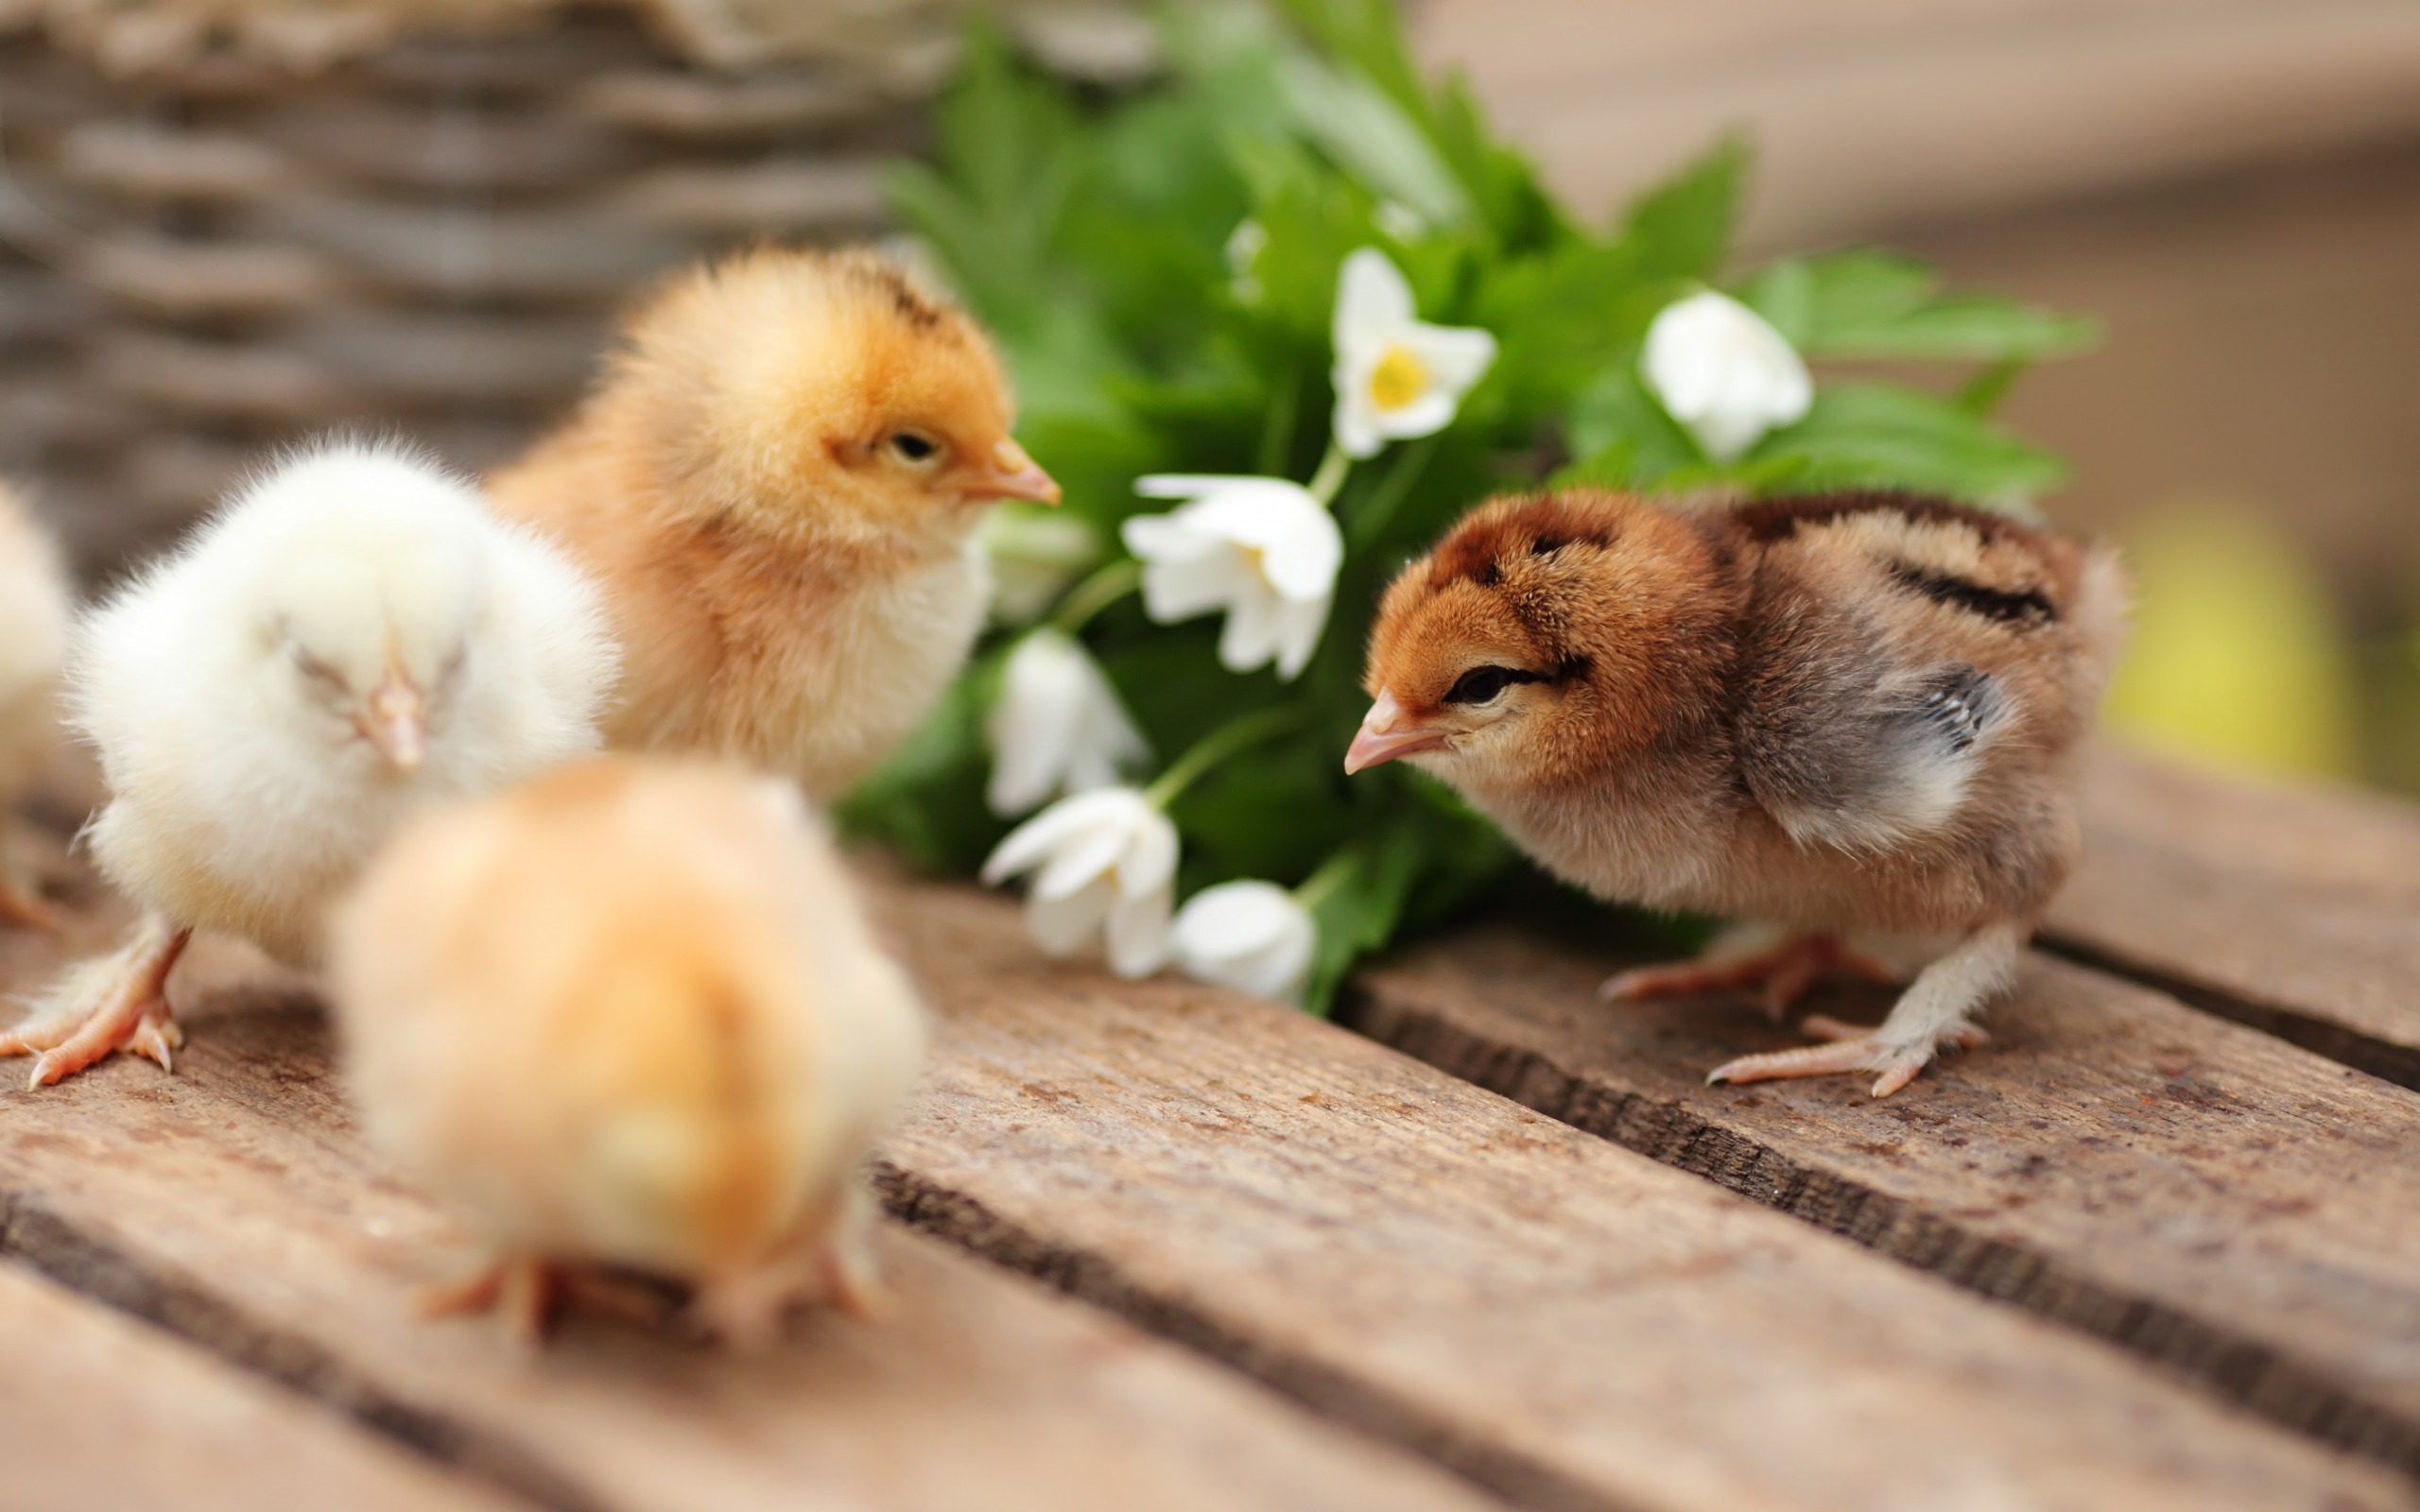 Download wallpapers Chickens, small birds, spring, cute